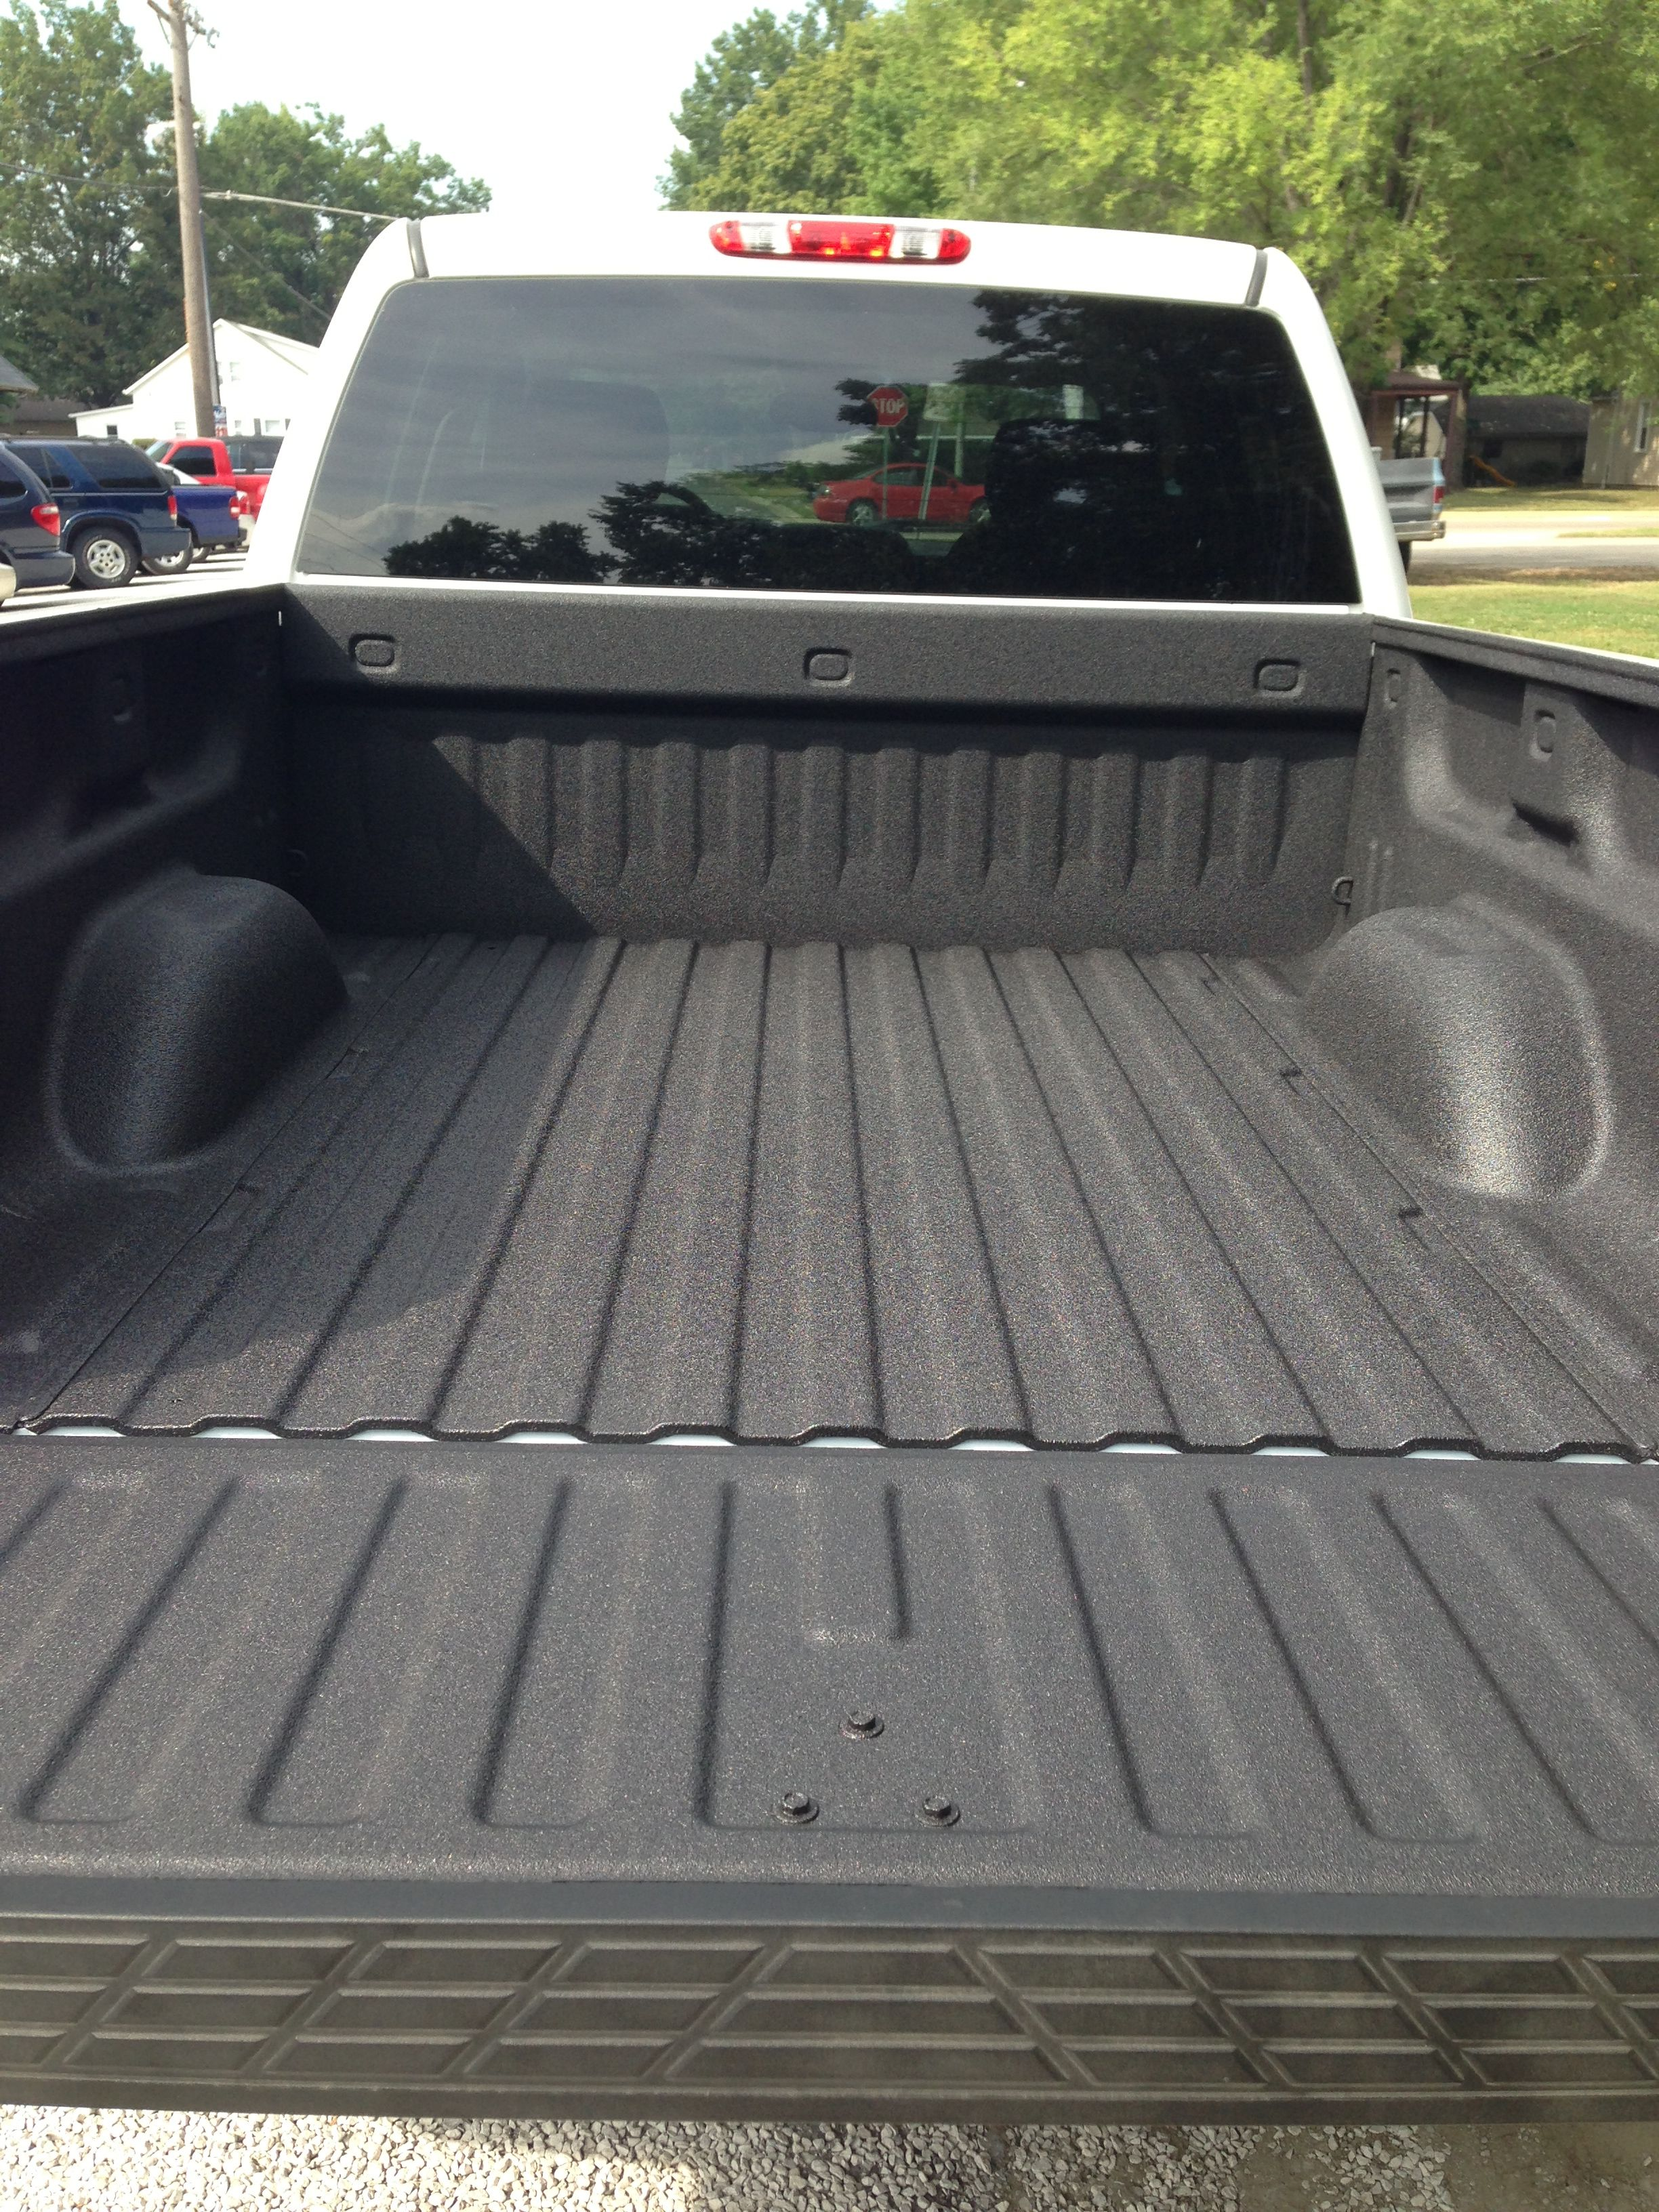 Spray In Bedliner 13 Silverado Spray On Bedliner Truck Bed